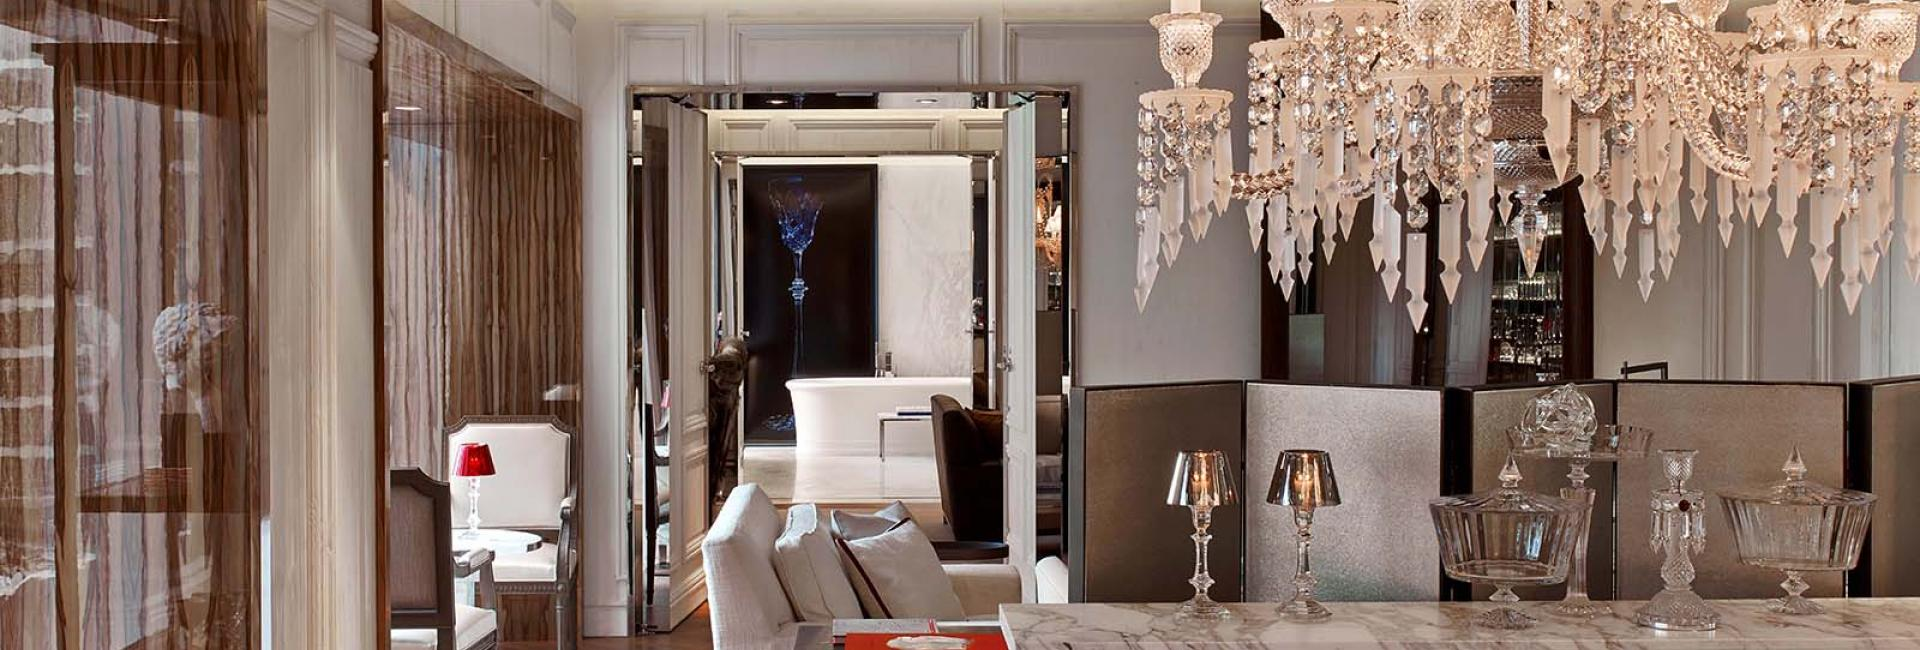 Baccarat Suite at Baccarat Hotel New York